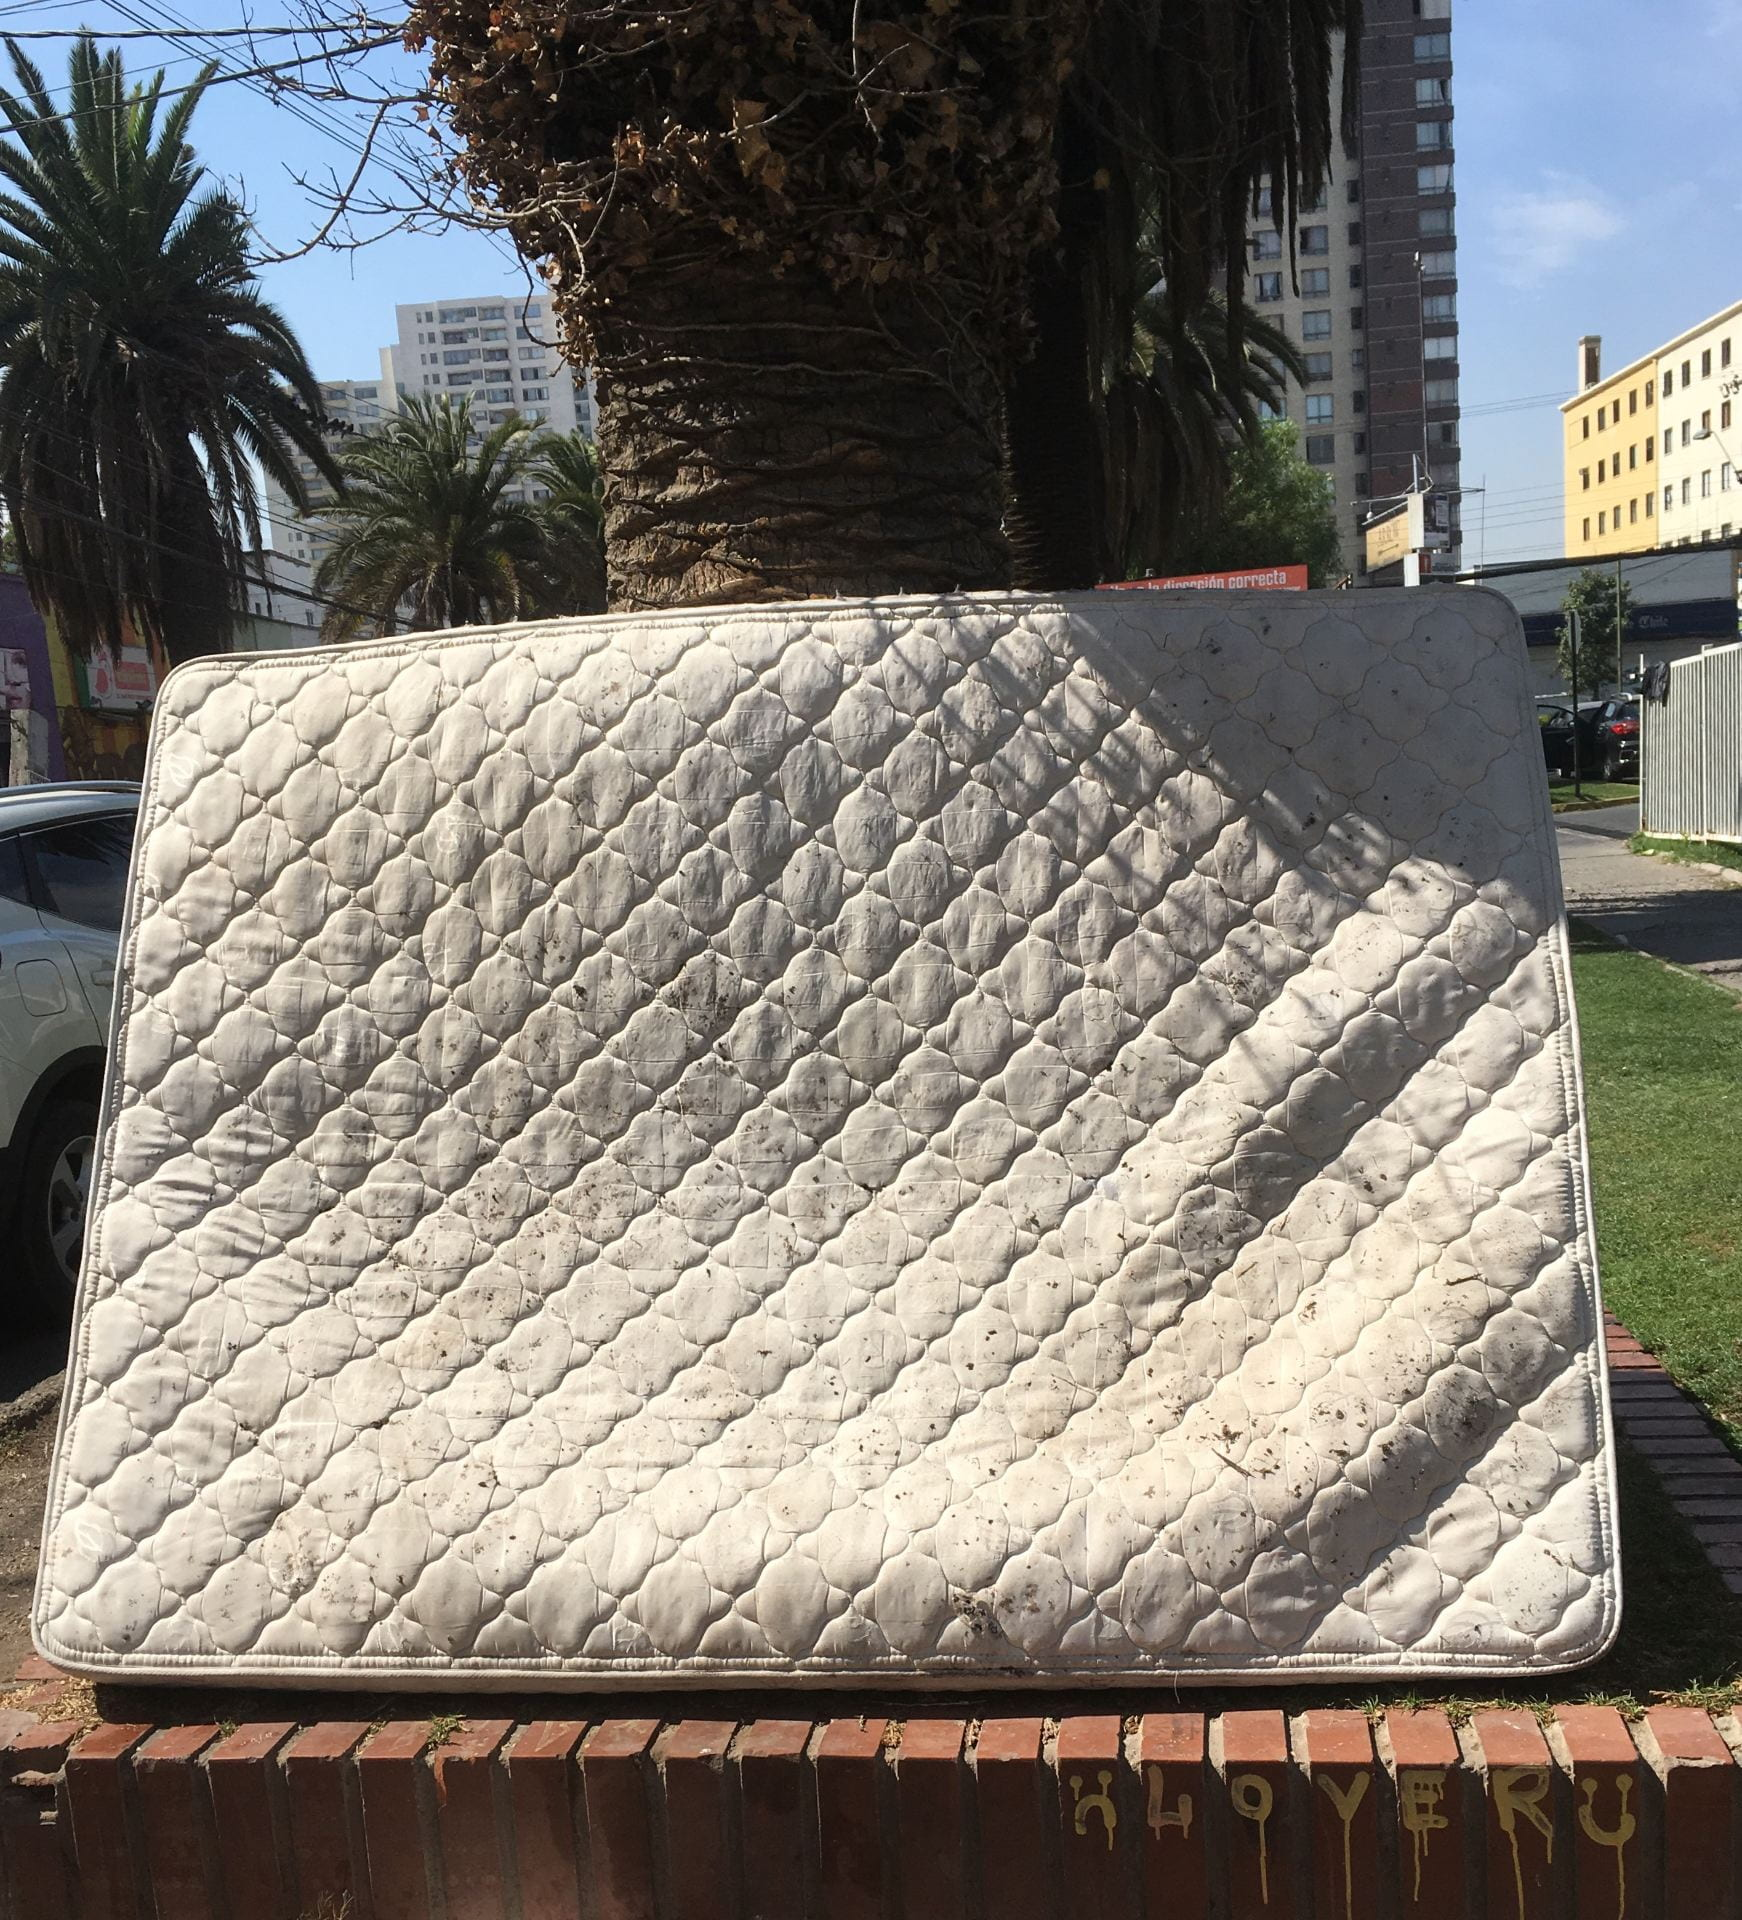 abandoned mattress in the street